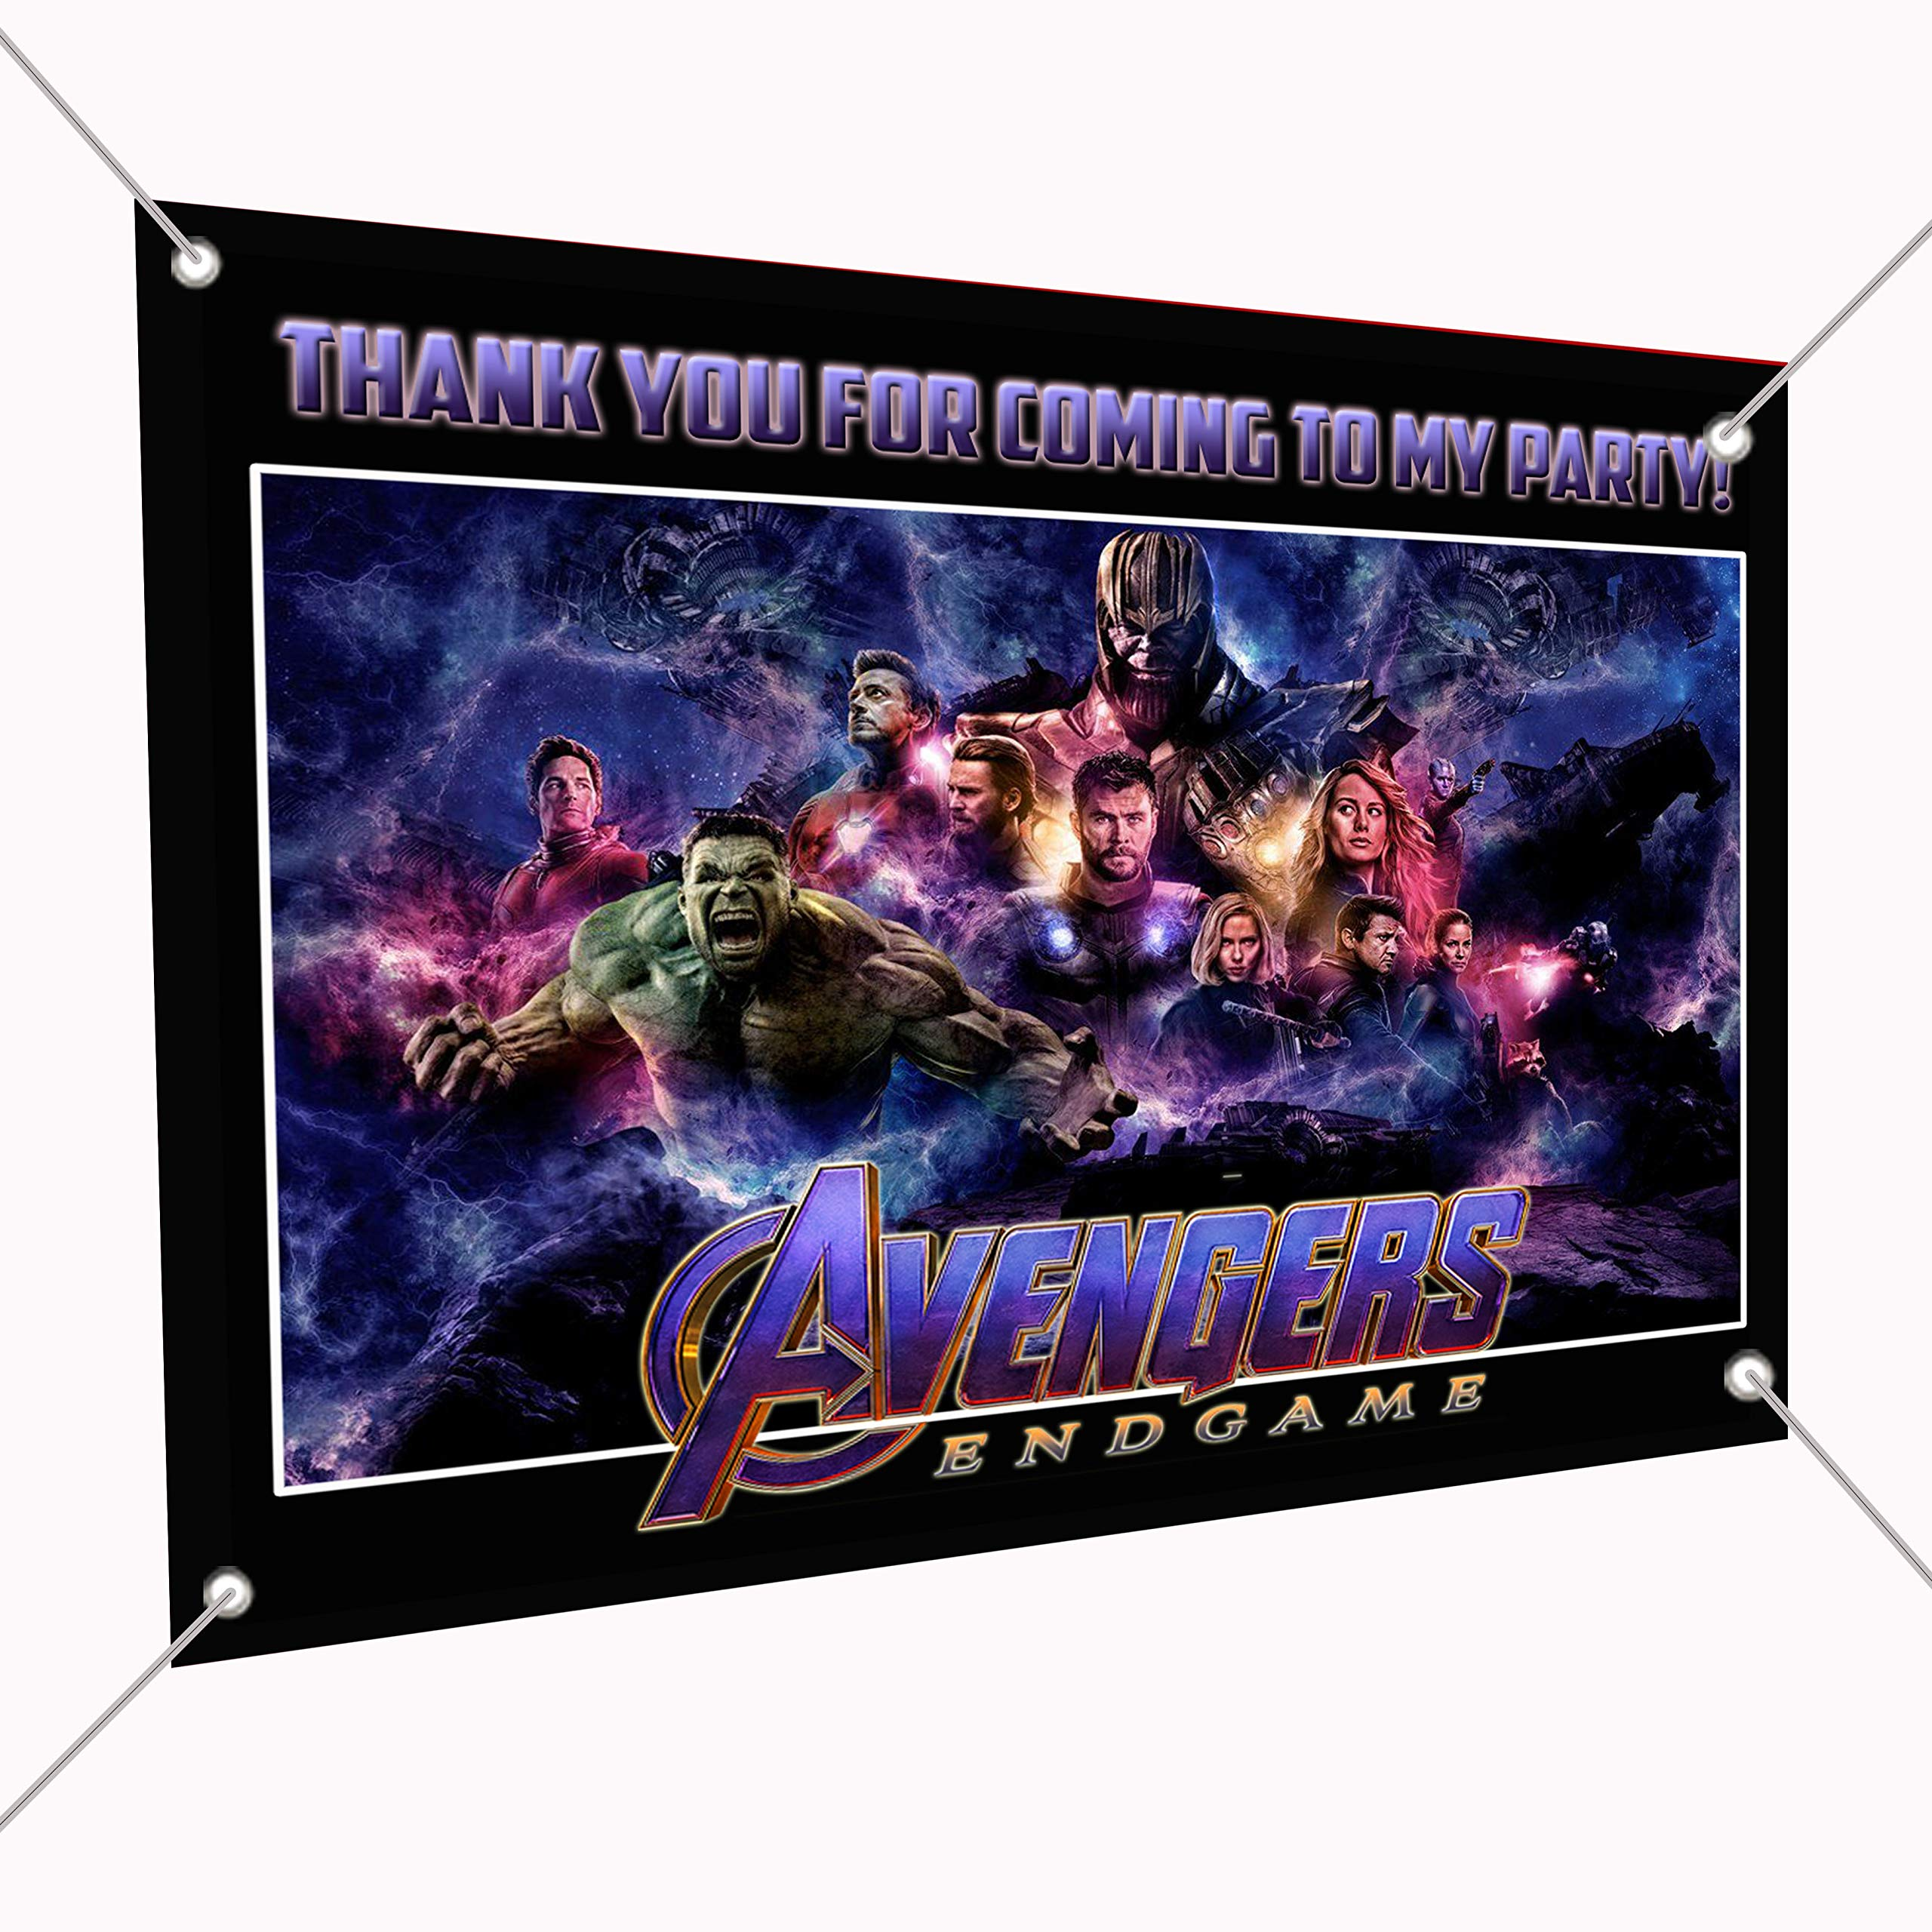 Avengers Endgame Movie Banner Large Vinyl Indoor or Outdoor Banner Sign Poster Backdrop, Party Favor Decoration, 30'' x 24'', 2.5' x 2'